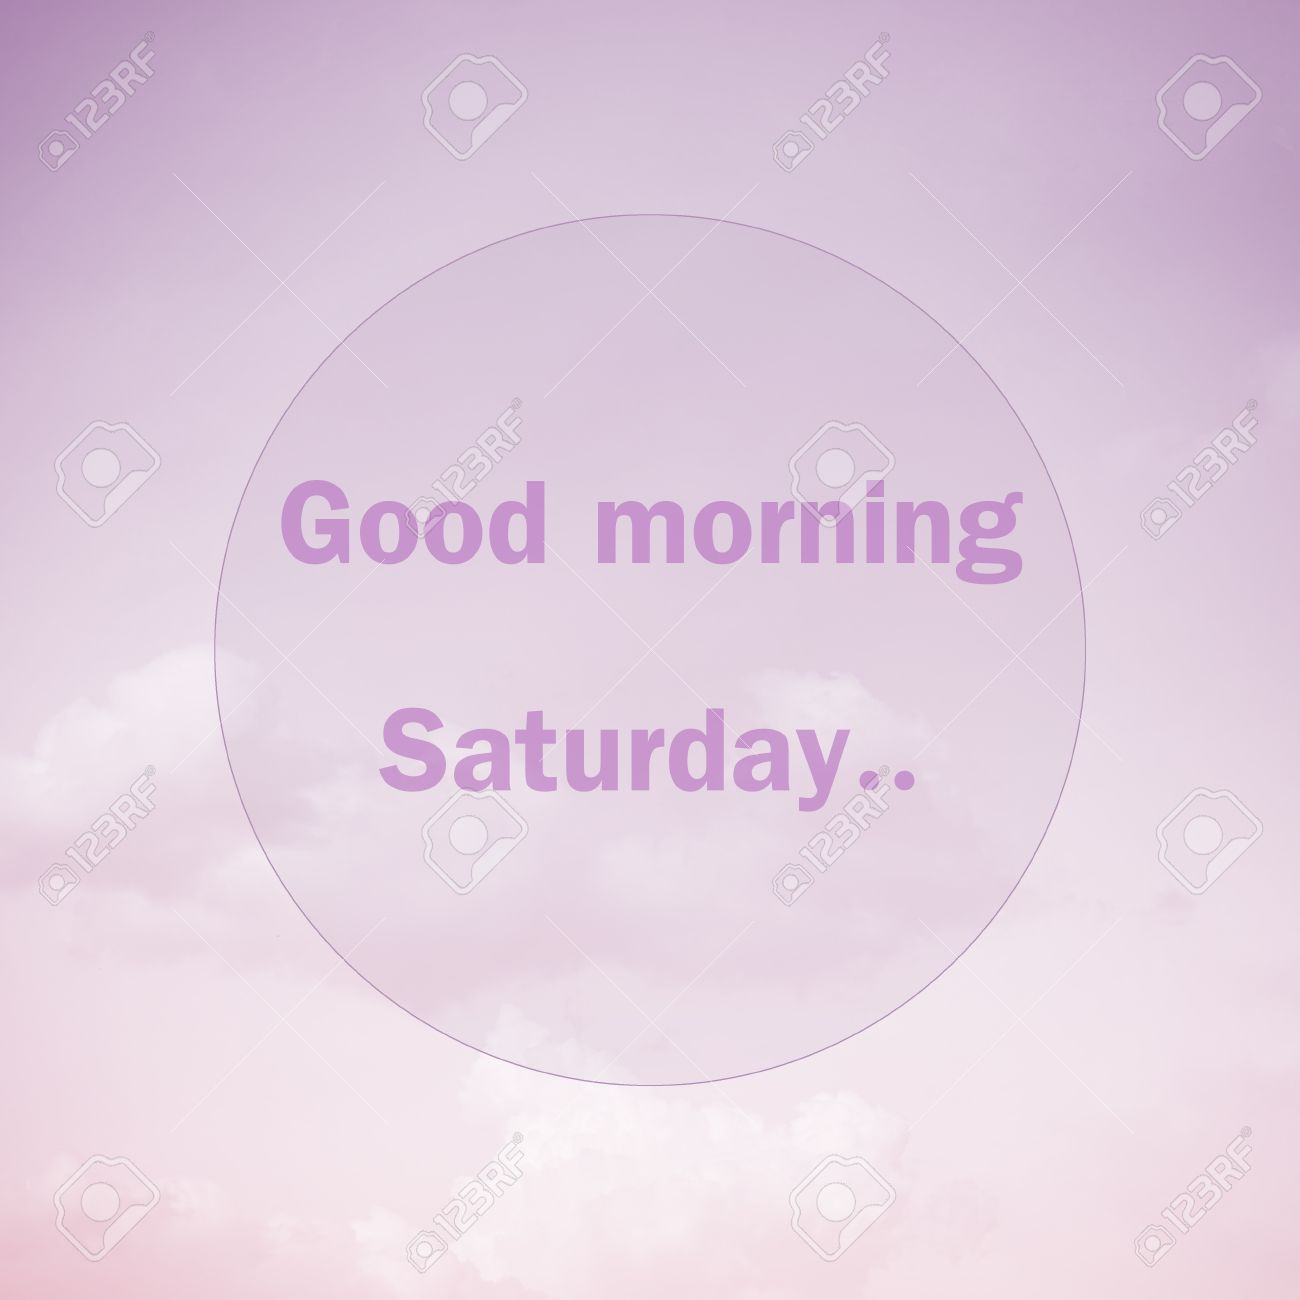 Good Morning Saturday Text On Soft Pastel Cloud And Sky Stock Photo